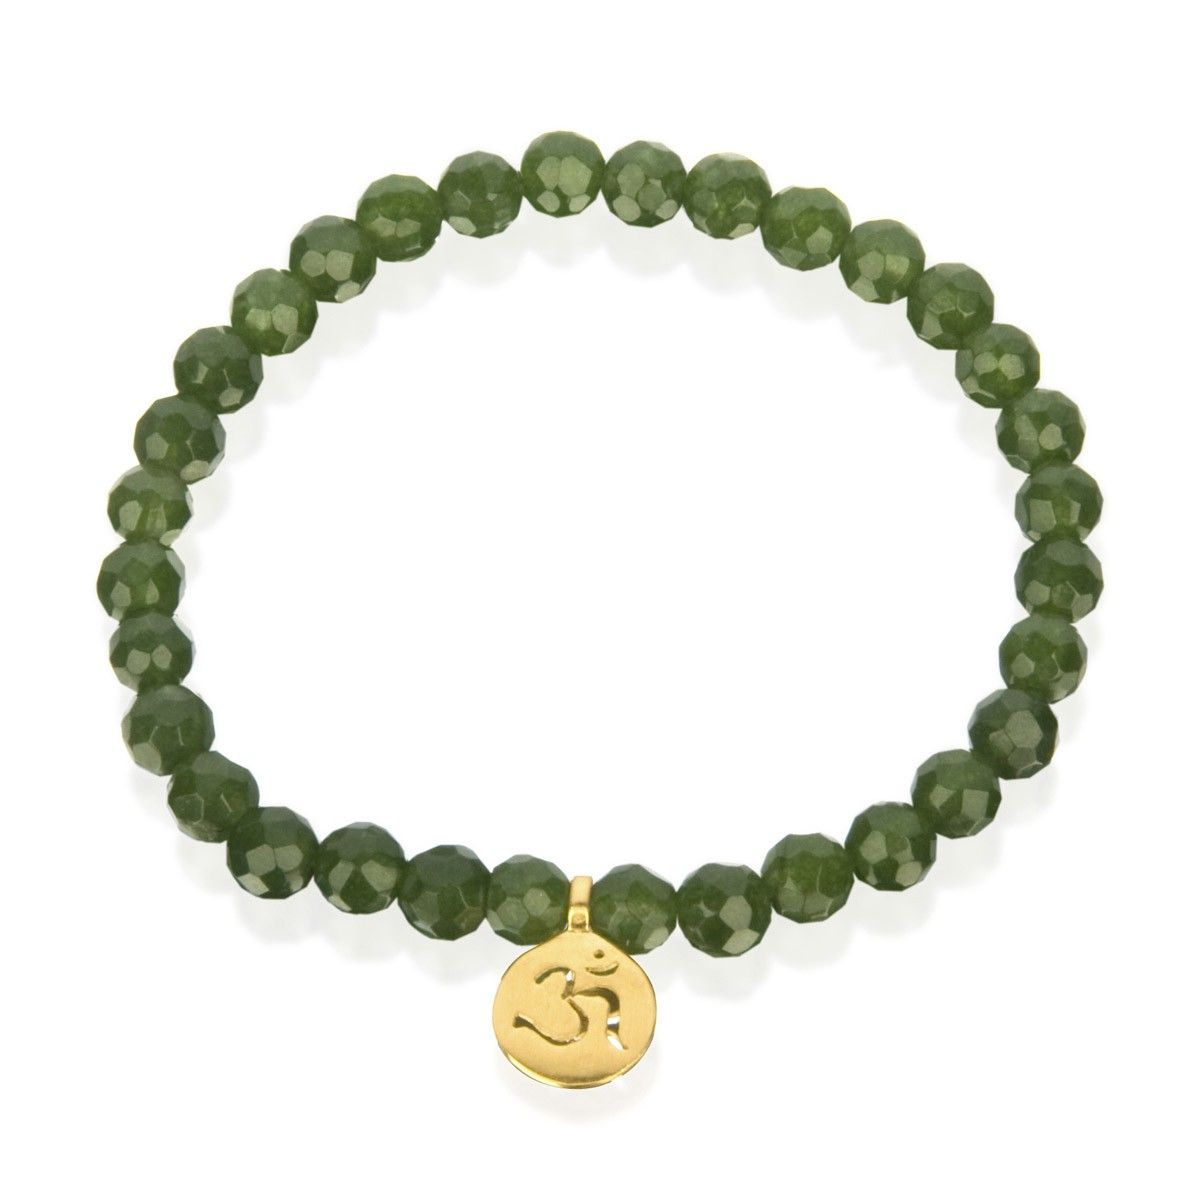 Green jade stretch beaded bracelet with om satya jewelry jewelry find this pin and more on jewelry with meaning aloadofball Image collections